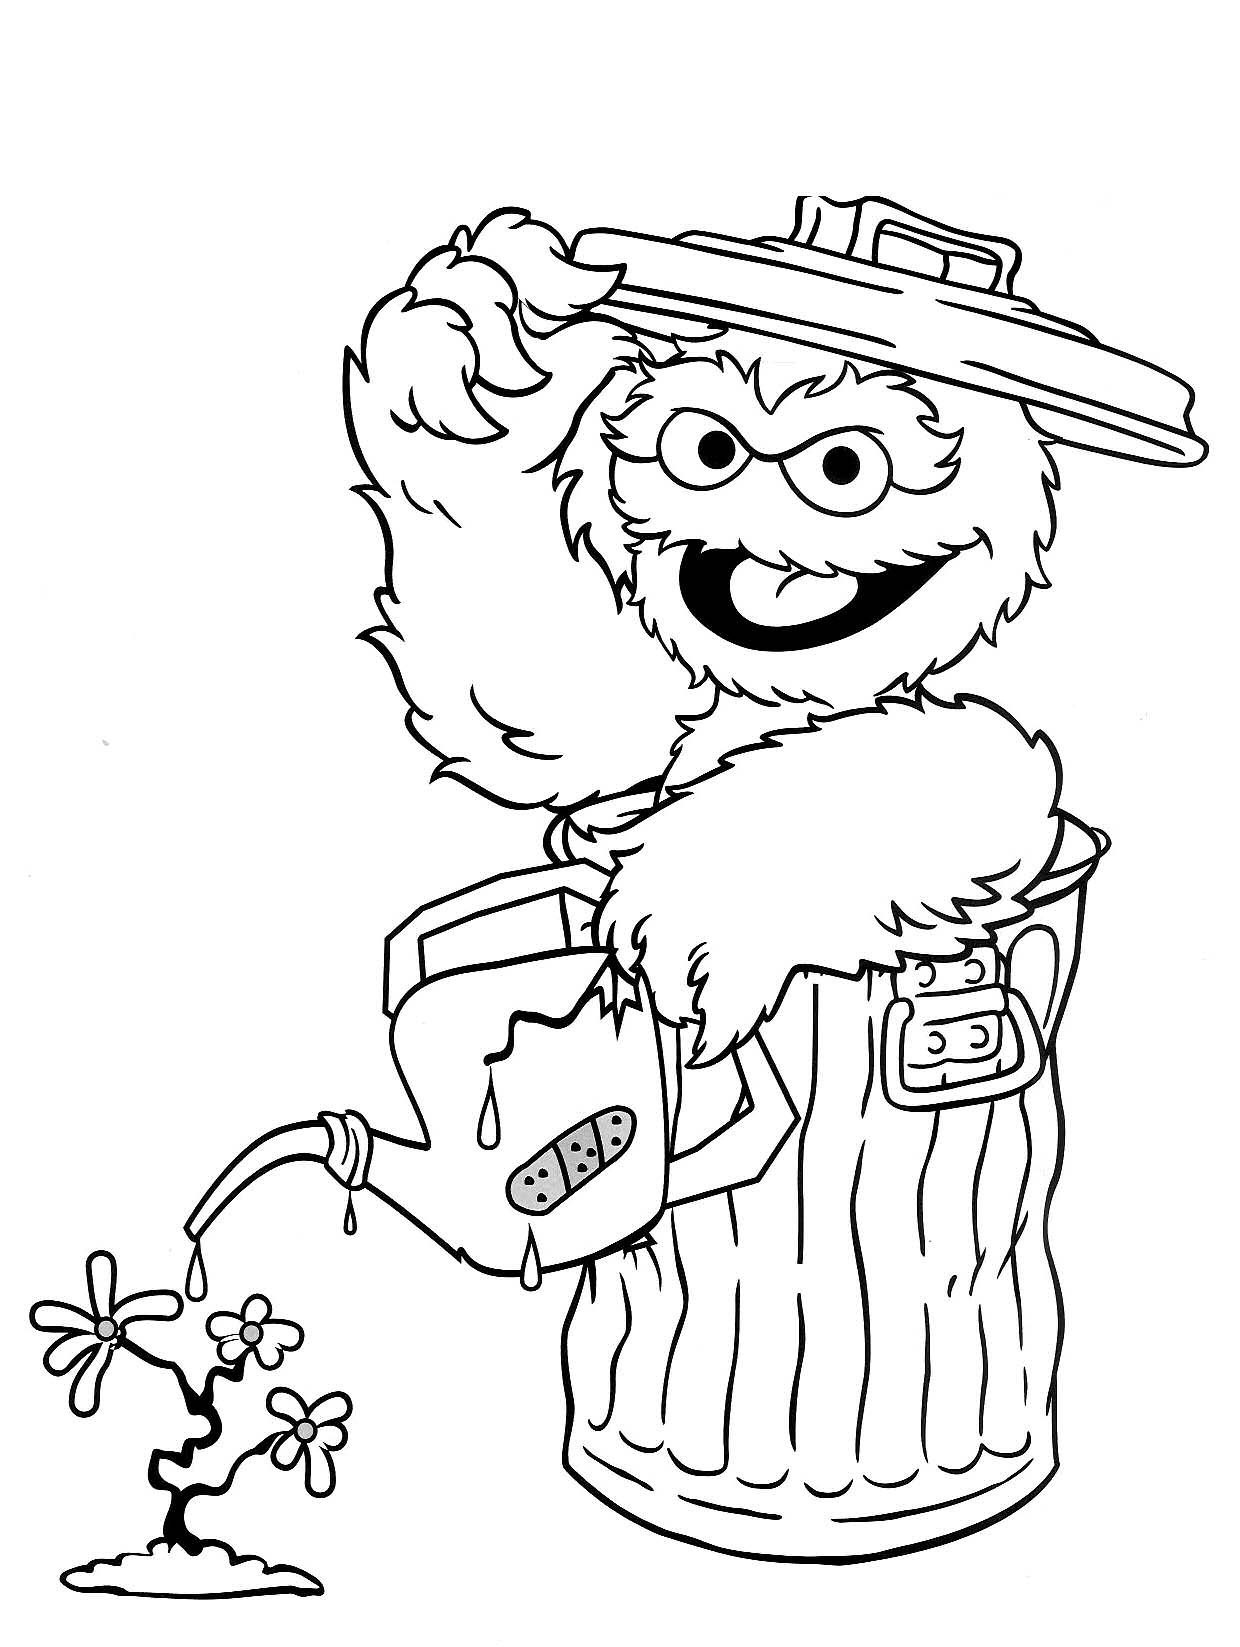 coloring pages of sesame street characters sesame street characters coloring pages at getdrawings street characters of coloring pages sesame